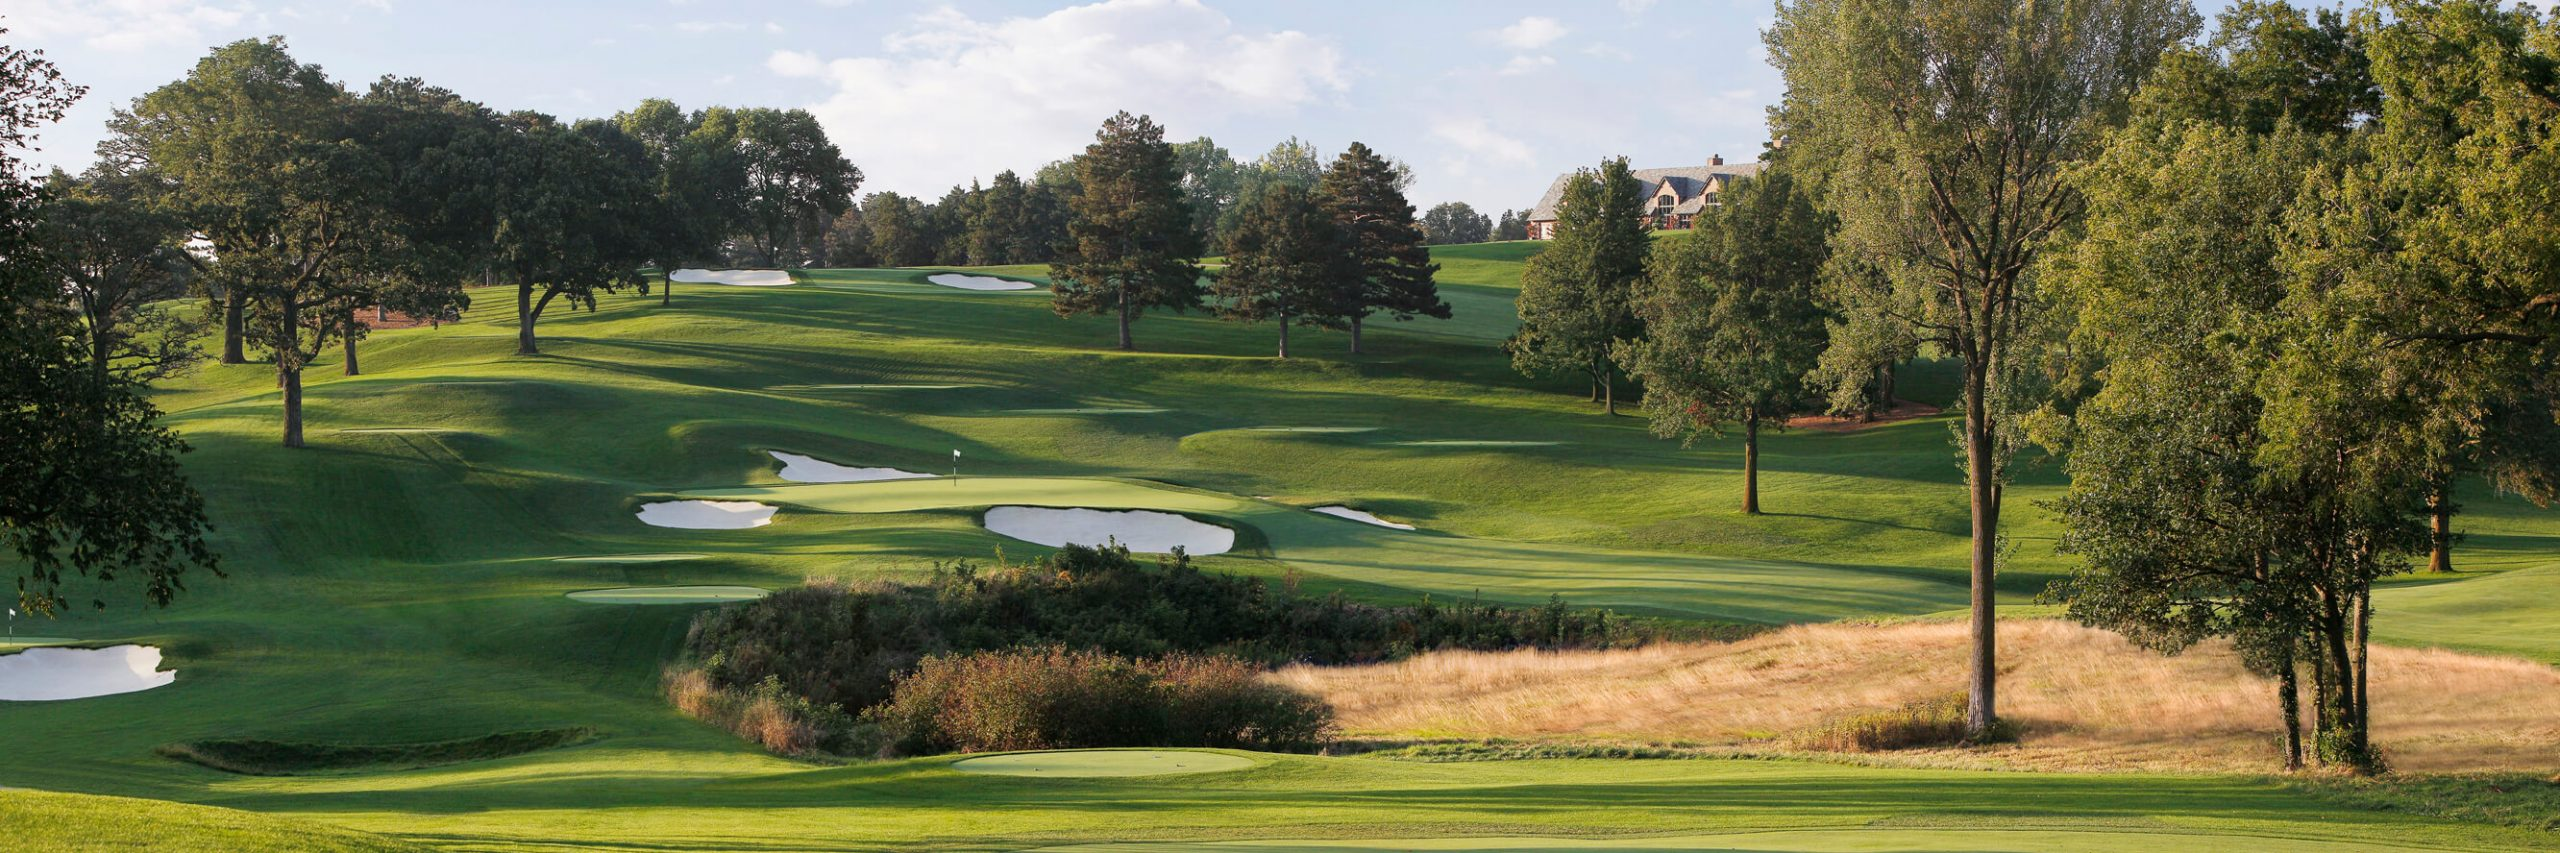 Golf Course Image - Omaha Country Club – Fairway View No. 12